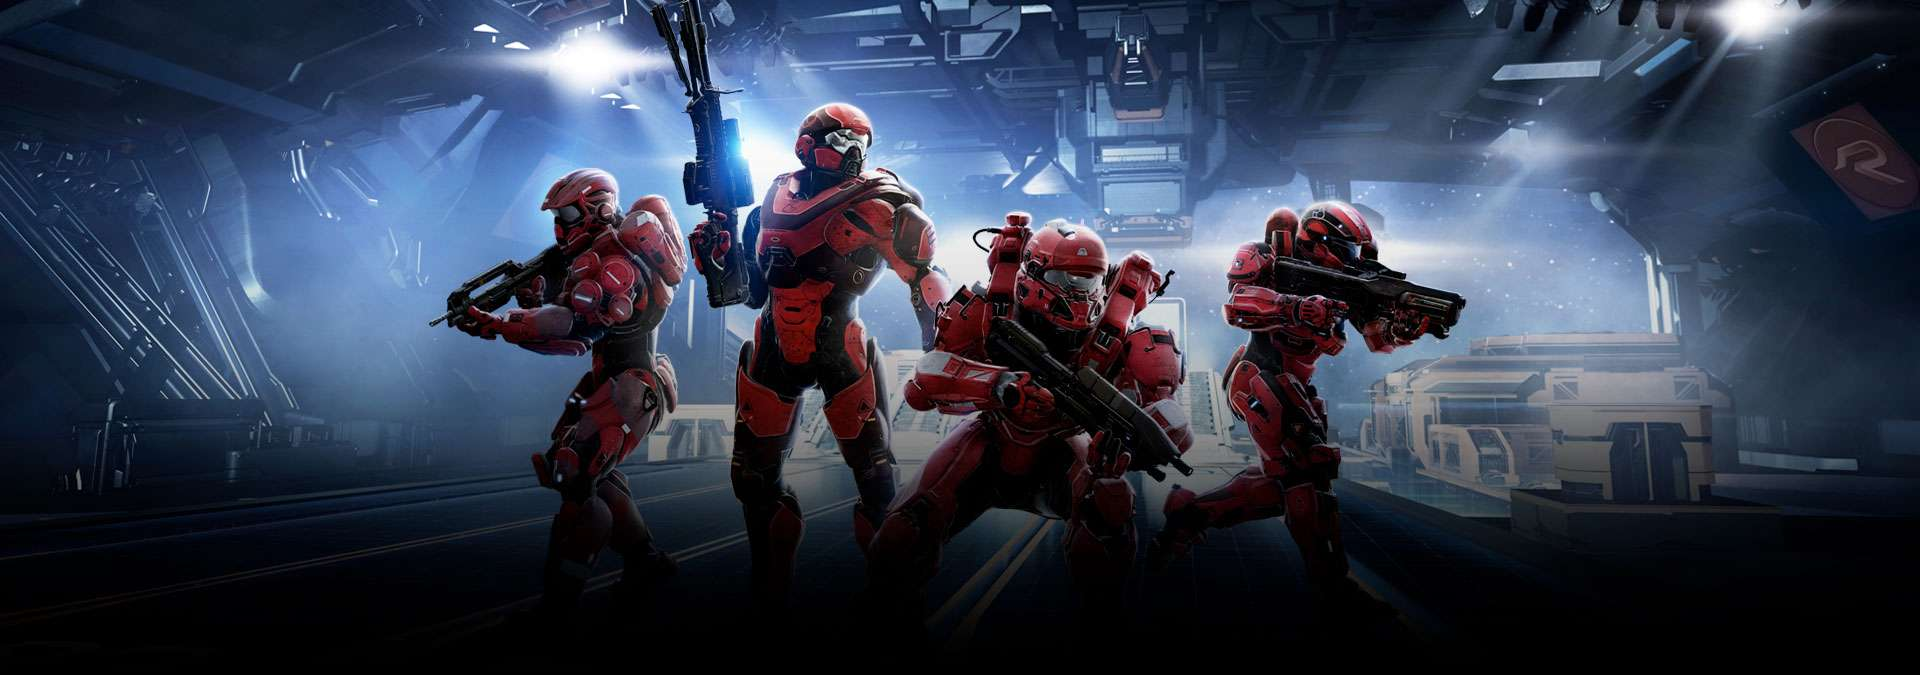 HANDS-ON: Halo 5 Multiplayer Beta